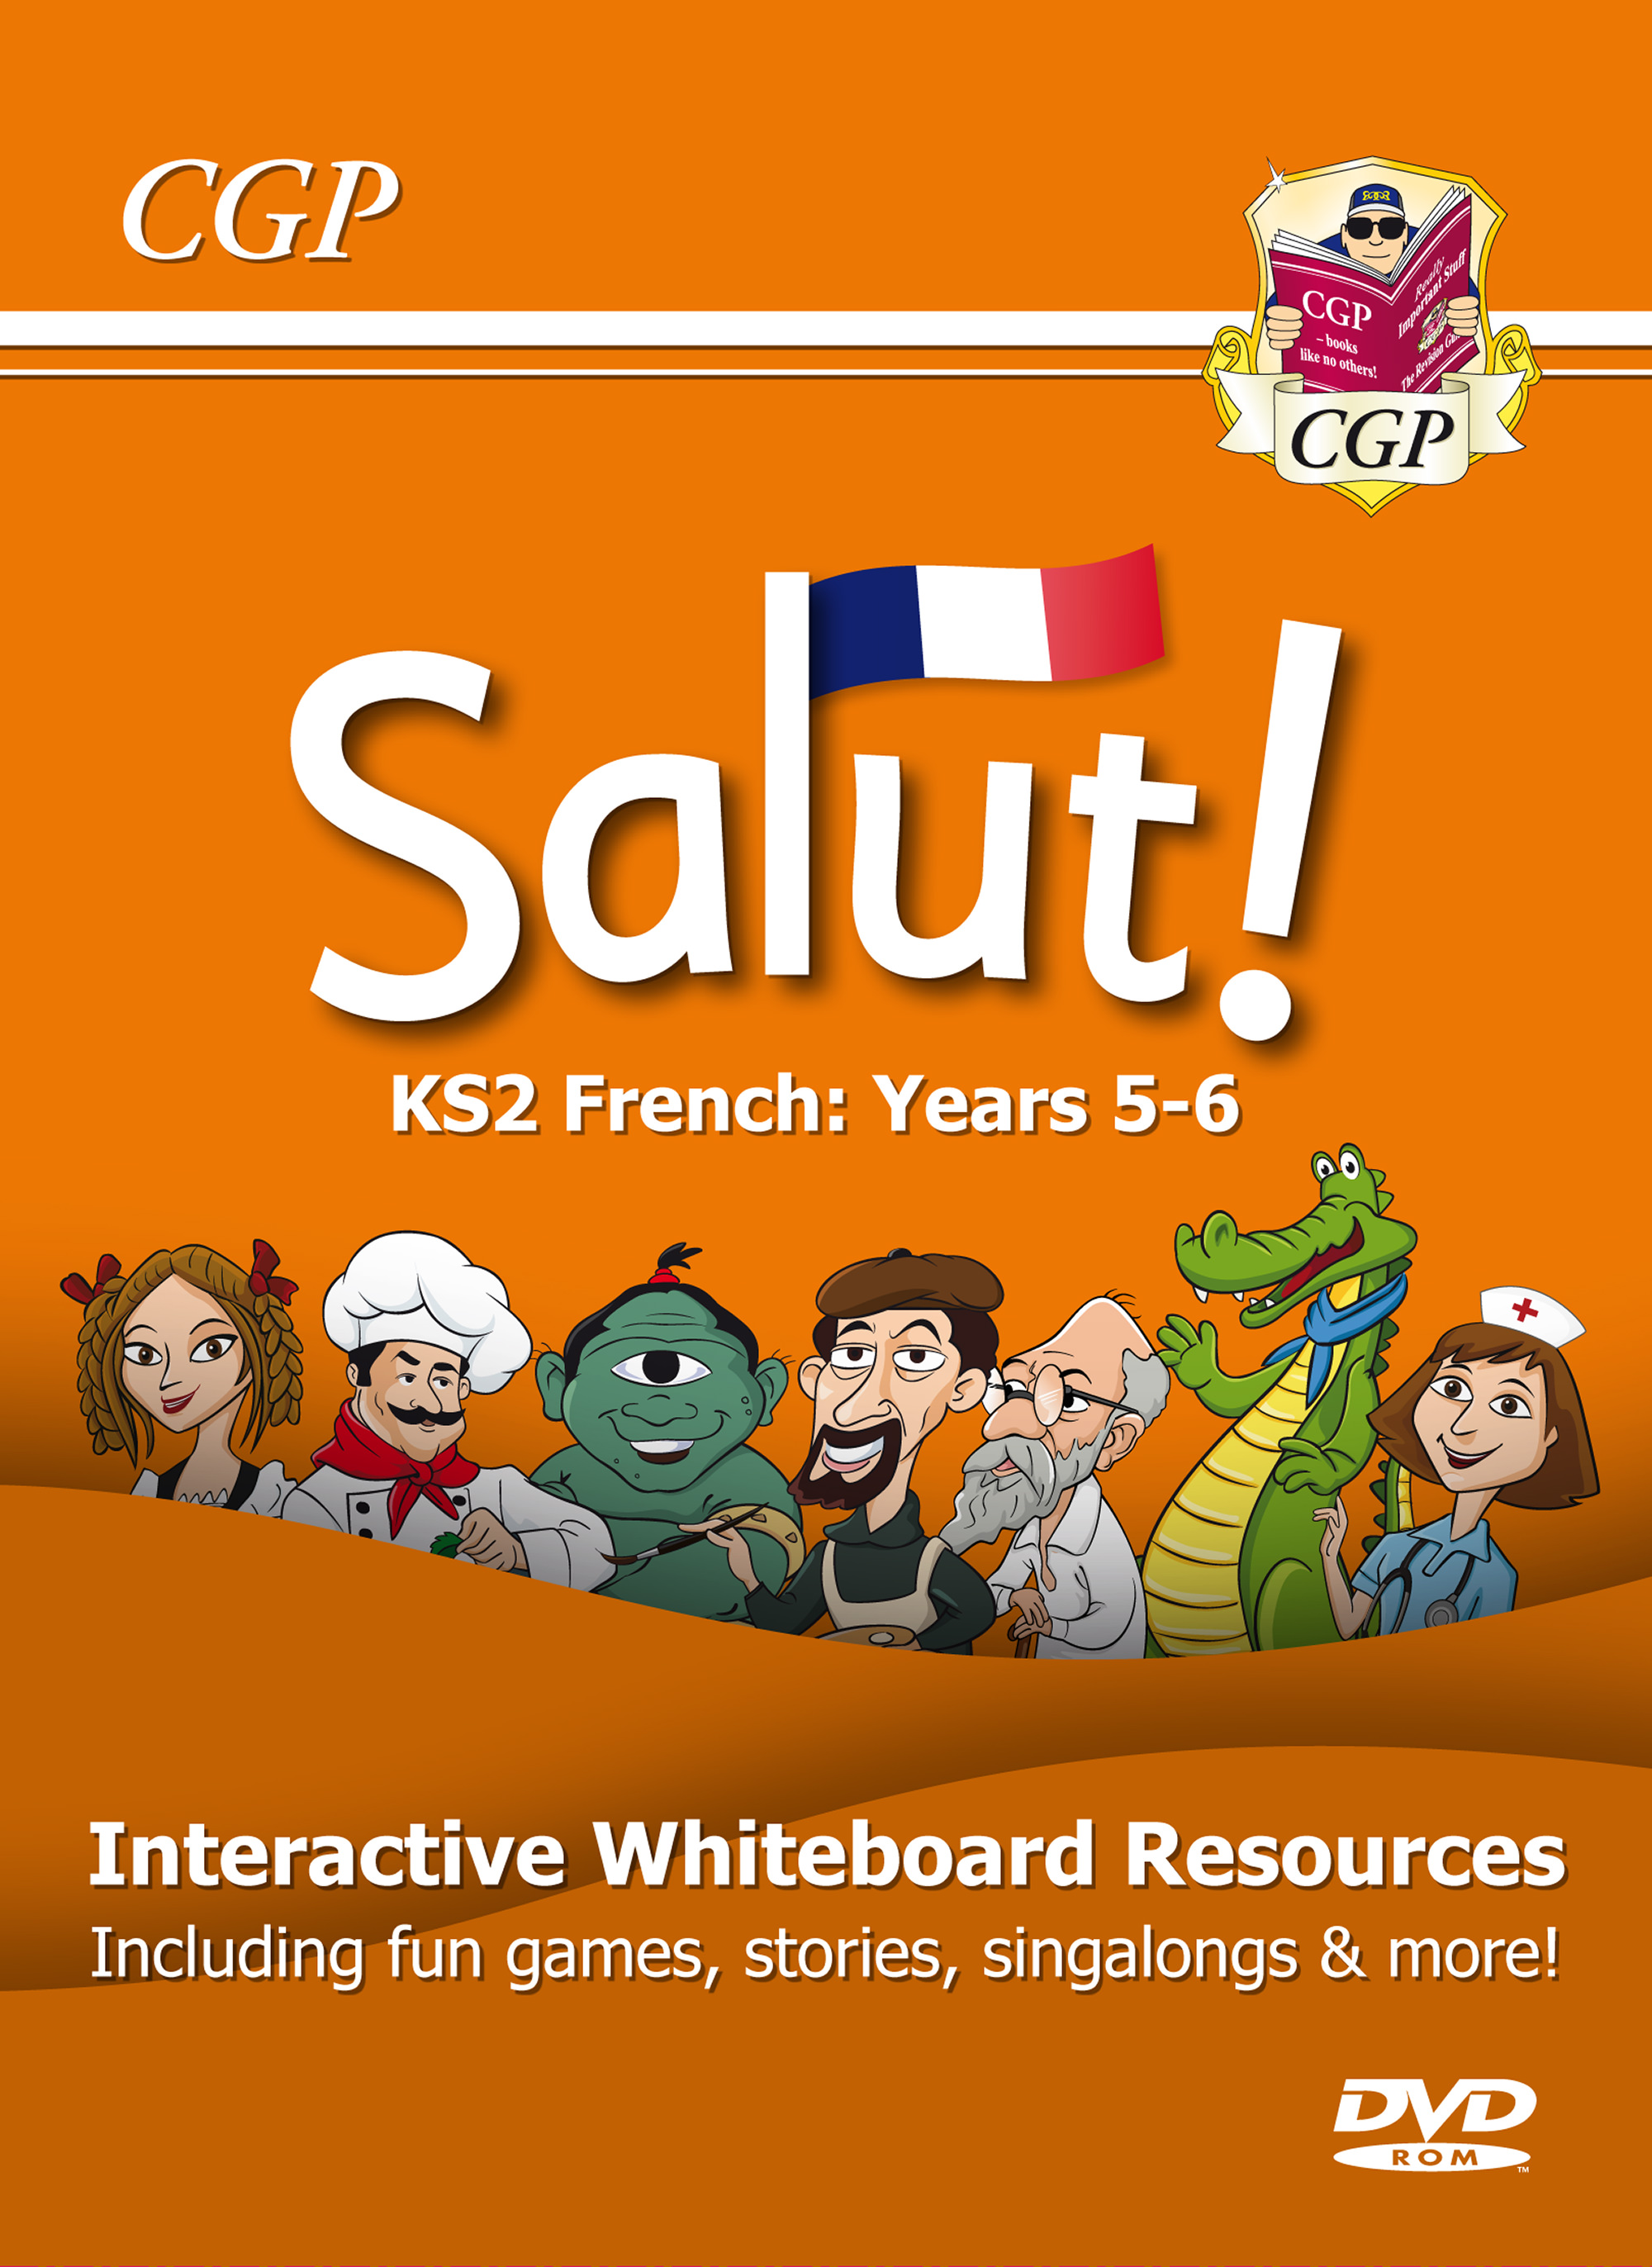 21FS6C1 - Salut! KS2 French Interactive Whiteboard Resources - Years 5-6 (DVD-ROM, 1-Year licence)